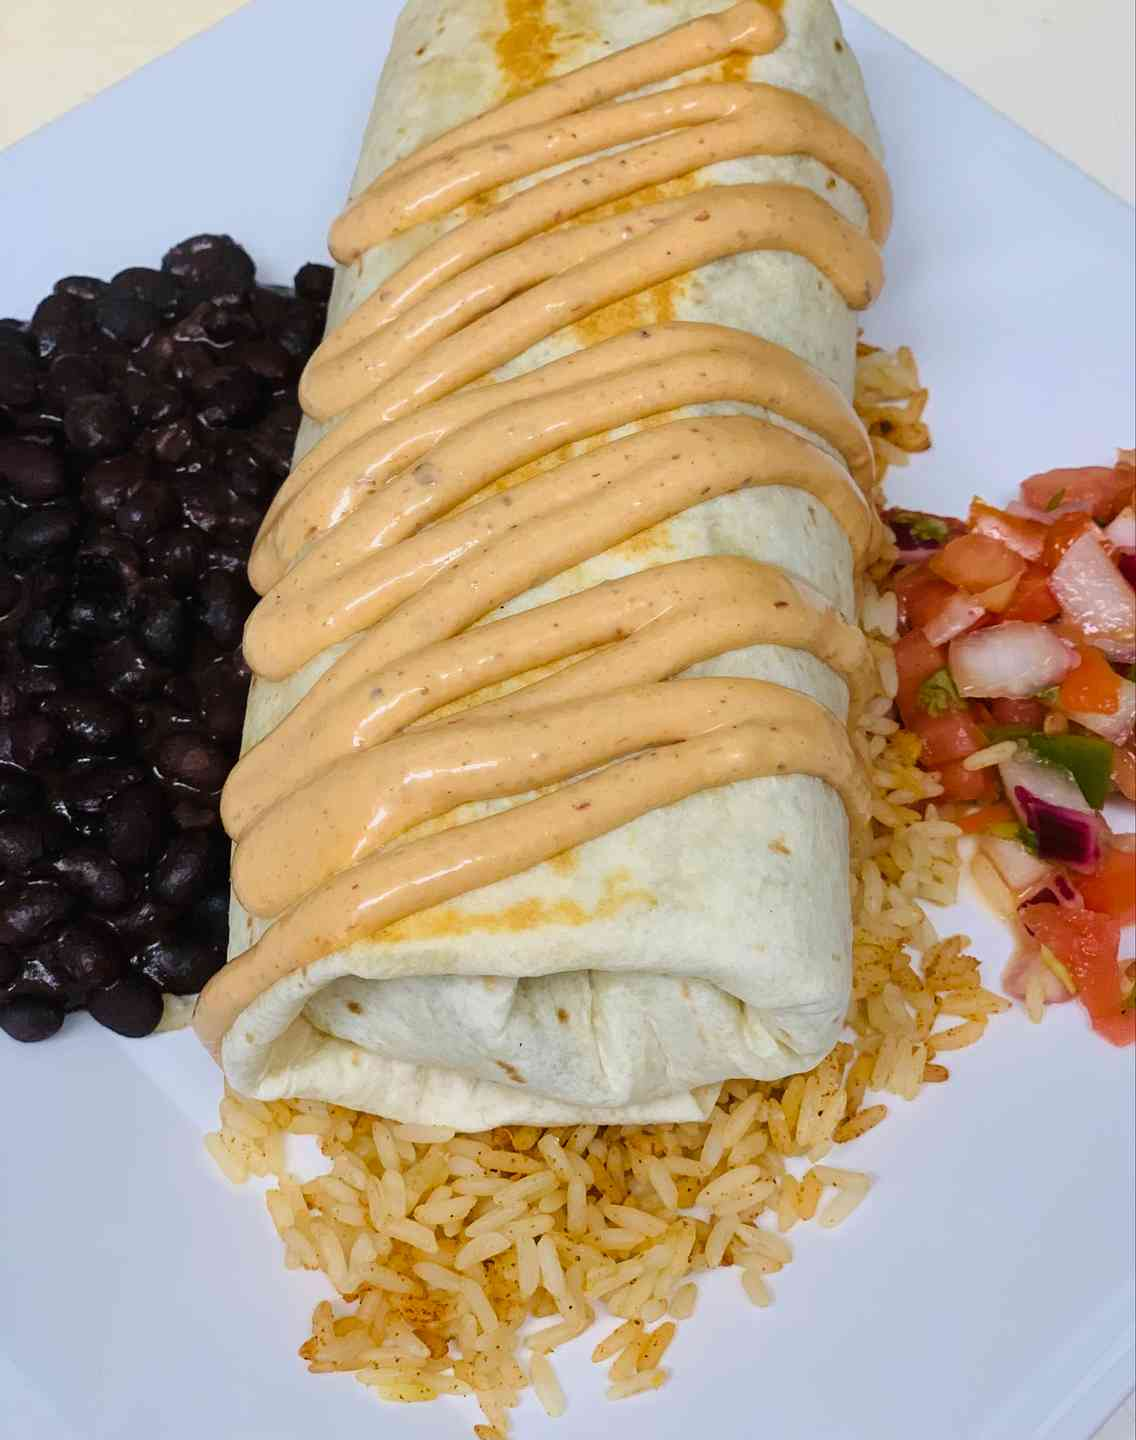 Cajun Yellowfin Tuna Burrito